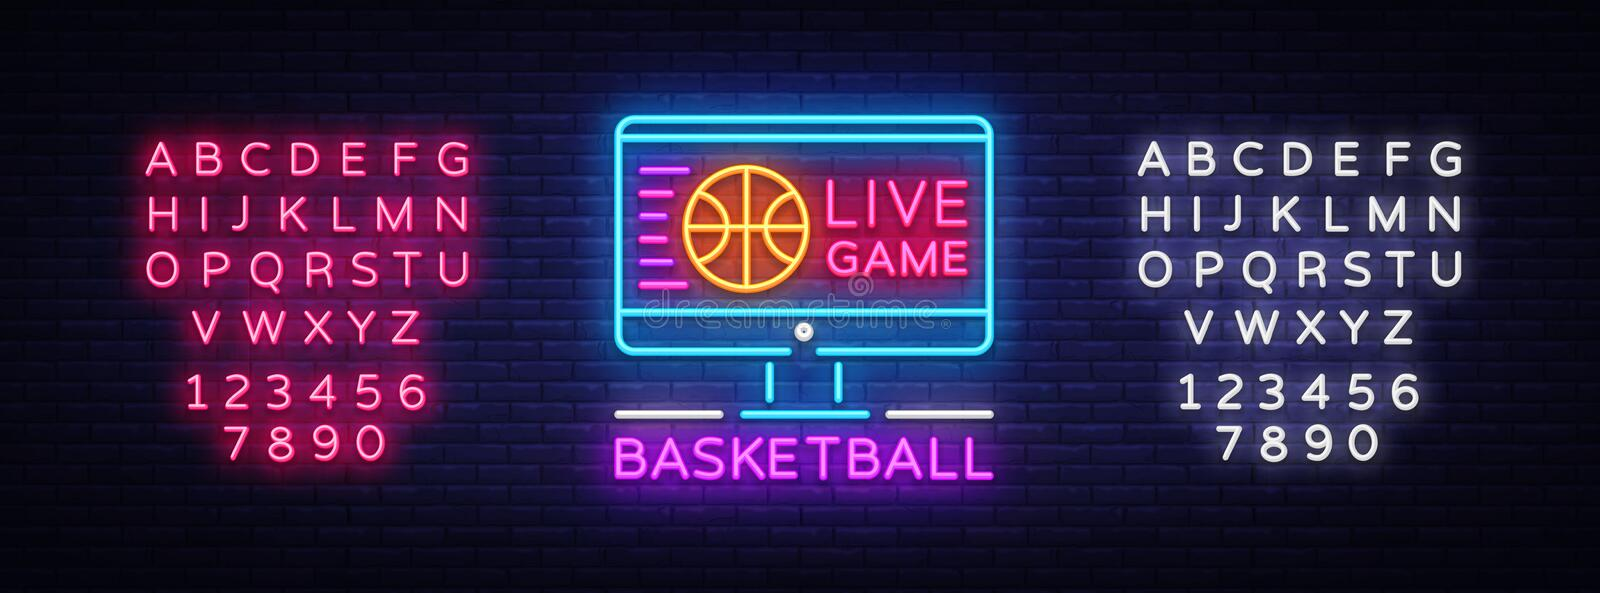 Basketball Live neon sign vector. Basketball Online Design template neon sign, light banner, neon signboard, modern royalty free illustration